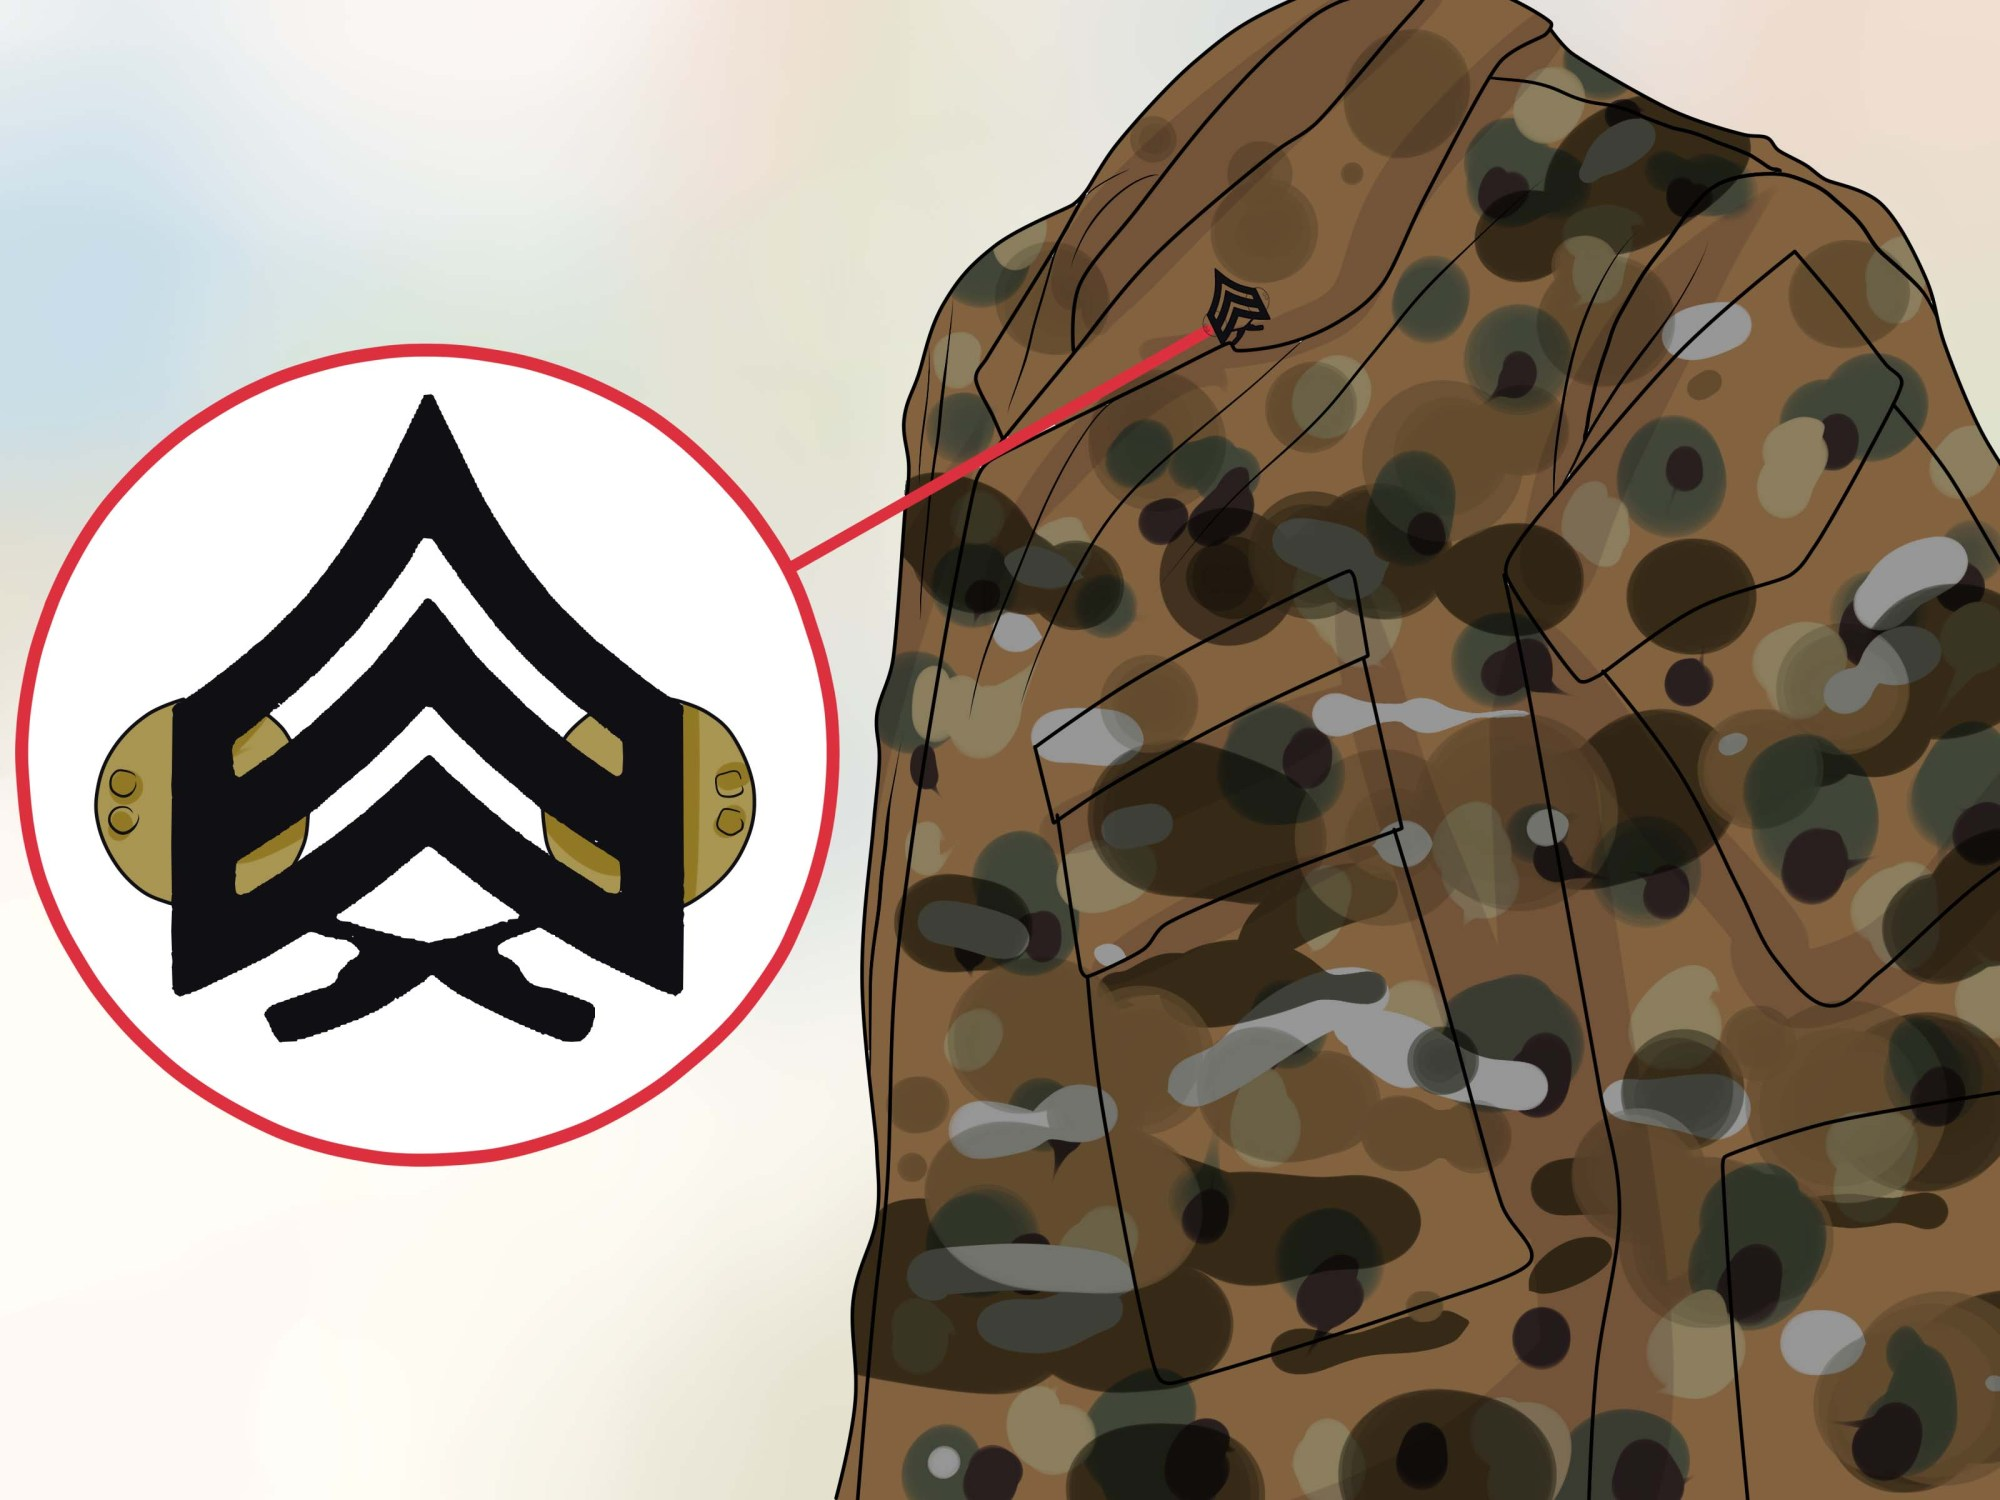 hight resolution of how to properly align rank insignia on marine uniforms